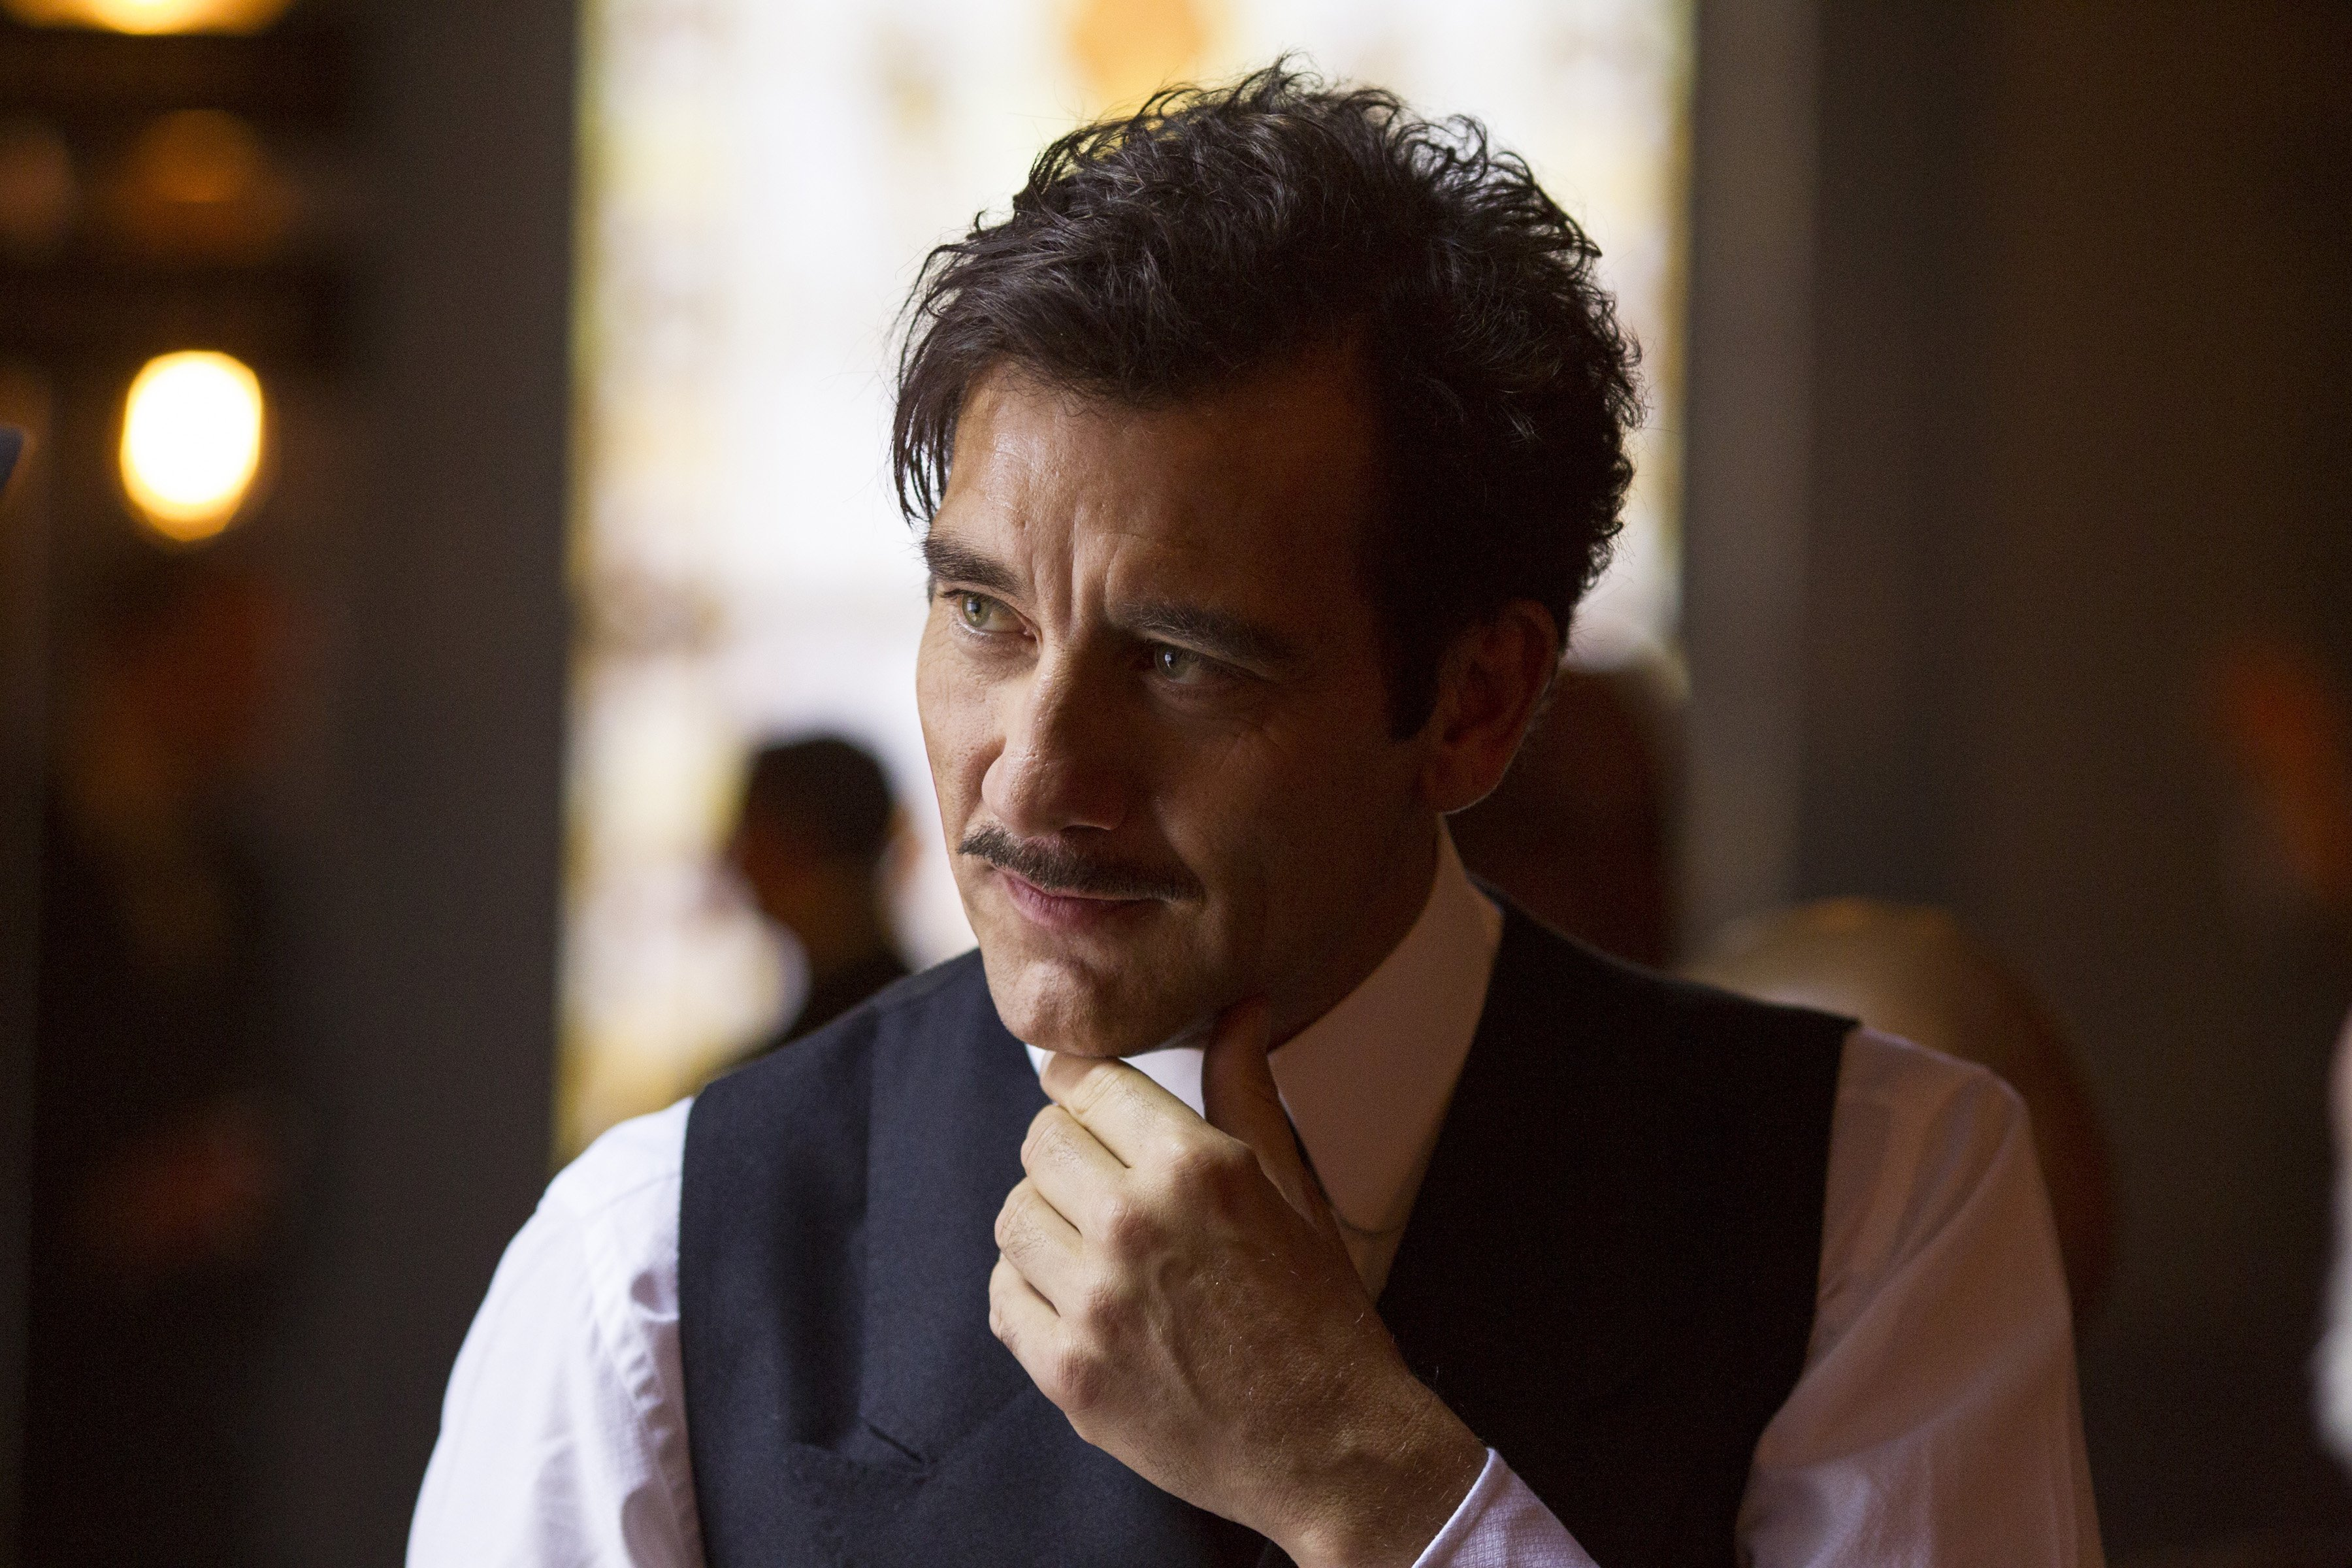 Photo de la saison 1 de The Knick avec Clive Owen